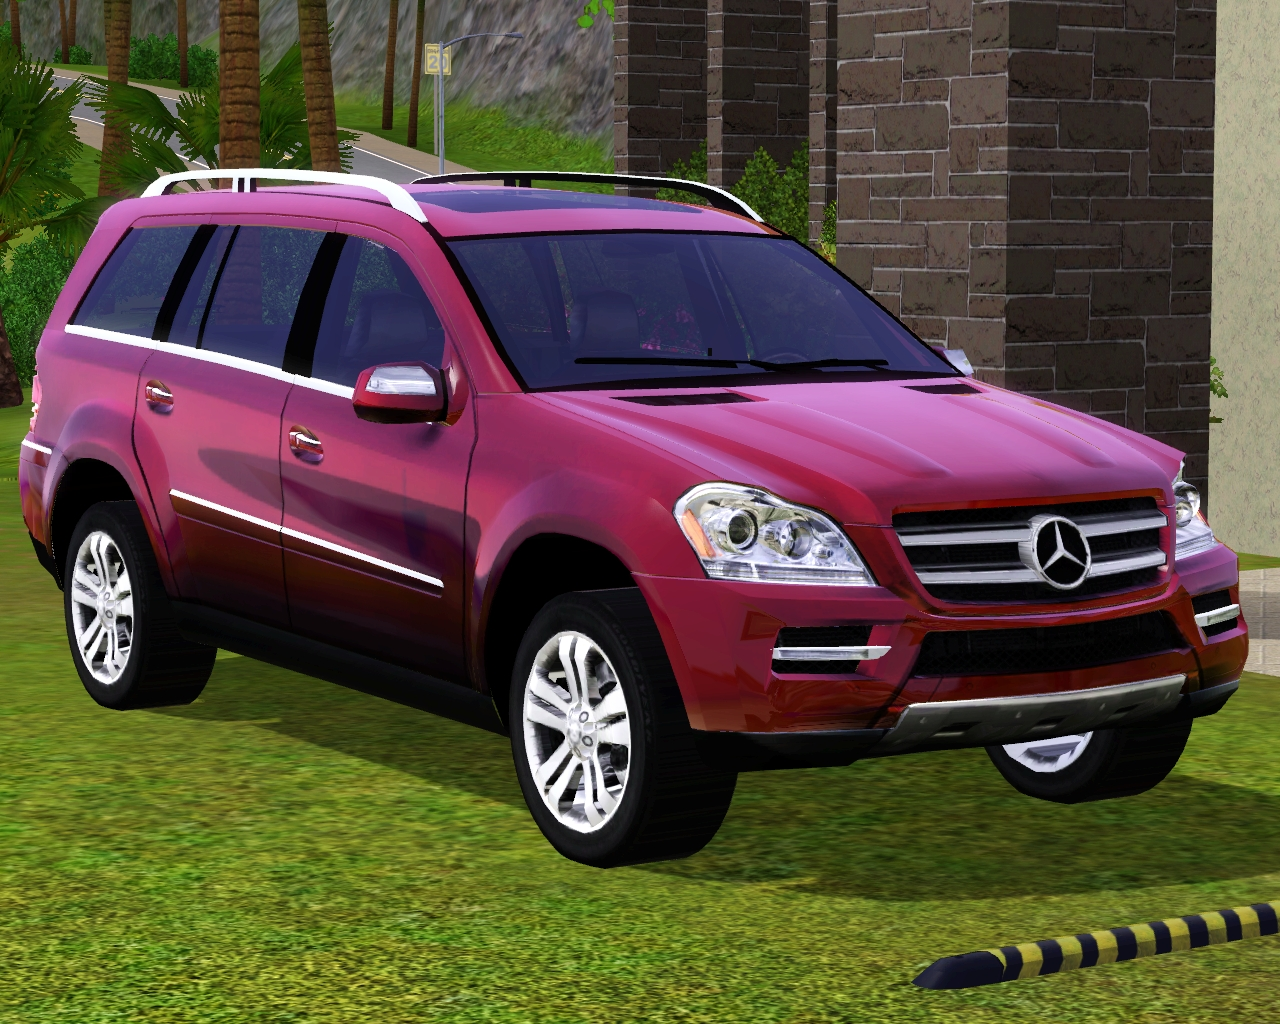 2010 Mercedes-Benz GL450 by Fresh-Prince